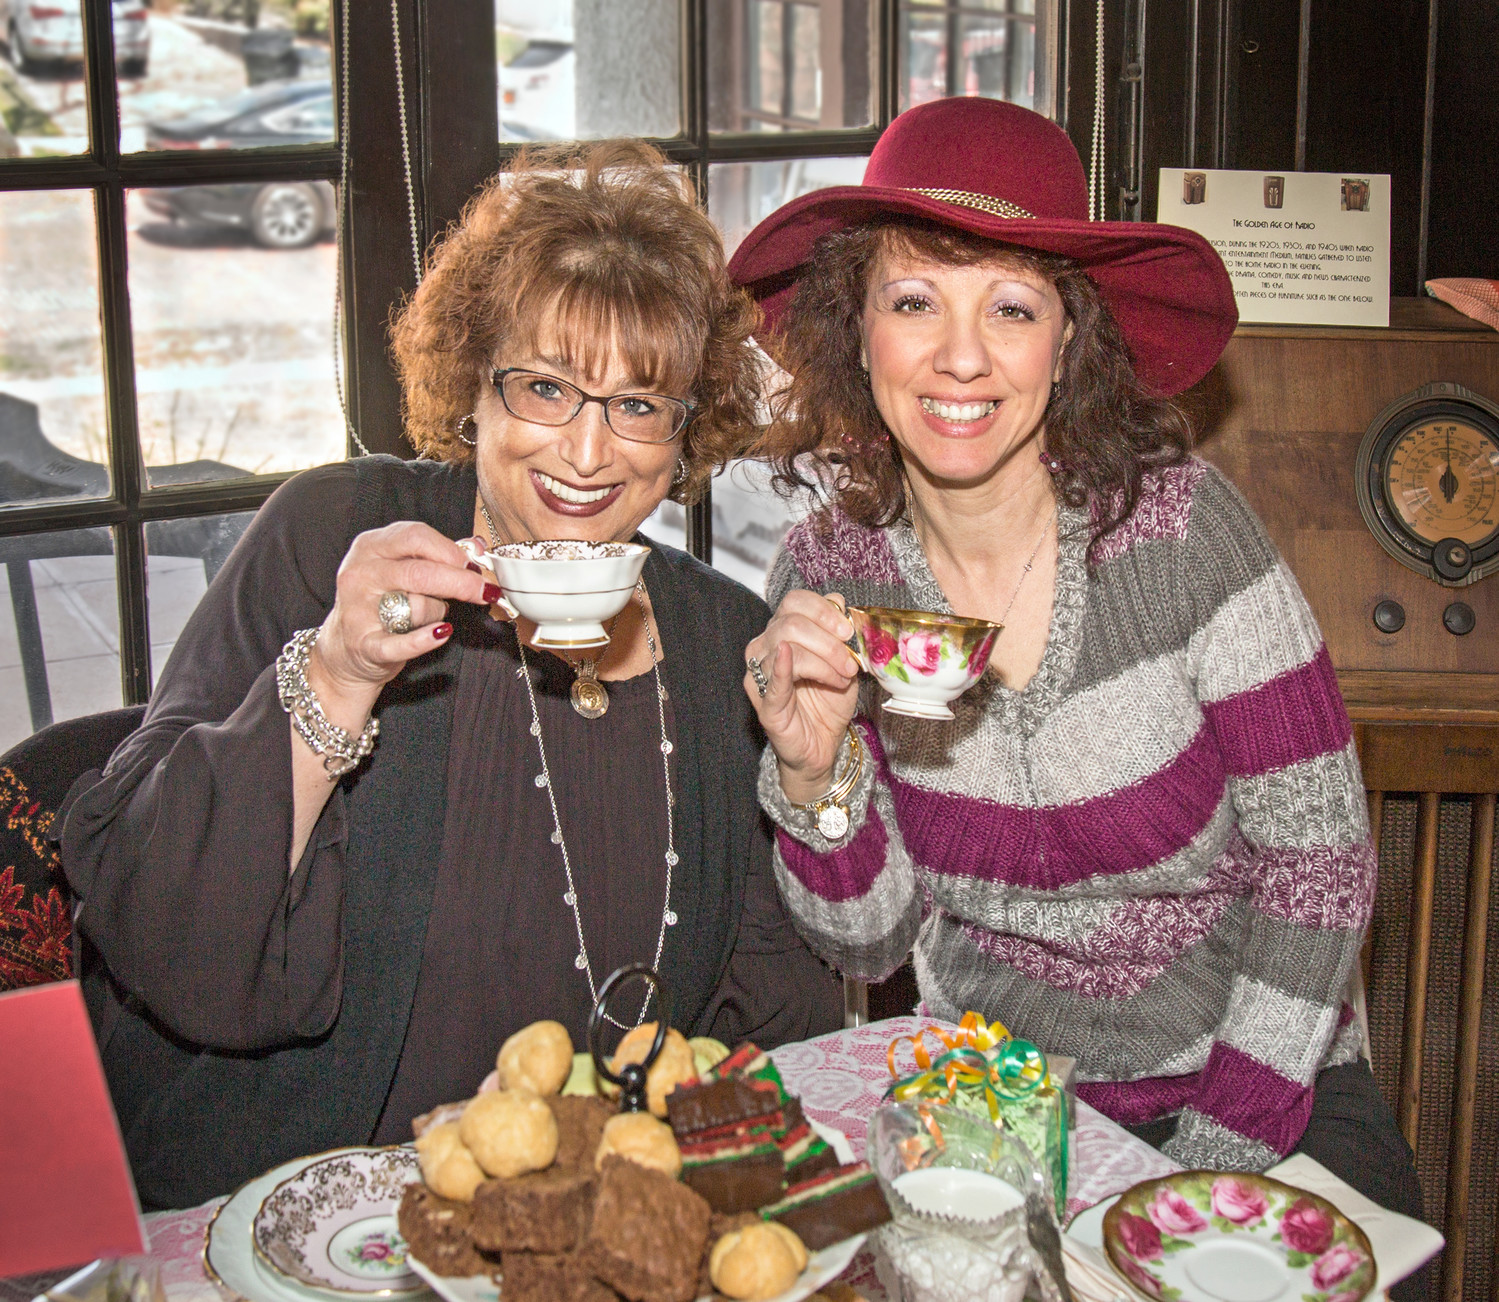 Lynbrook residents Audrey Korn, left, and Marianna Marano sipped tea at the party.